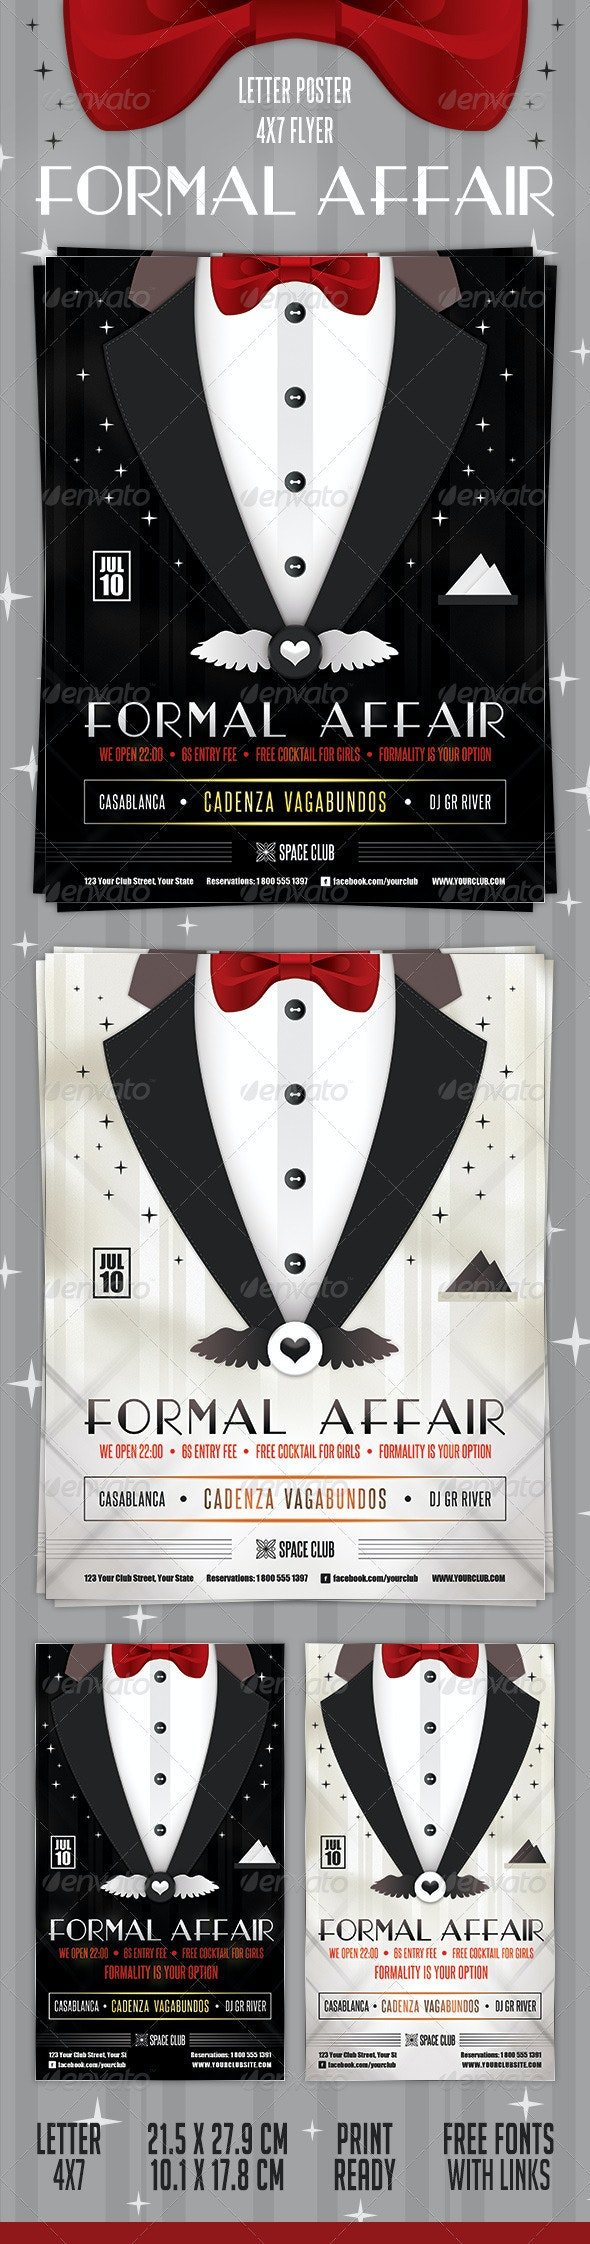 Formal Affair Poster and Flyer - Clubs & Parties Events